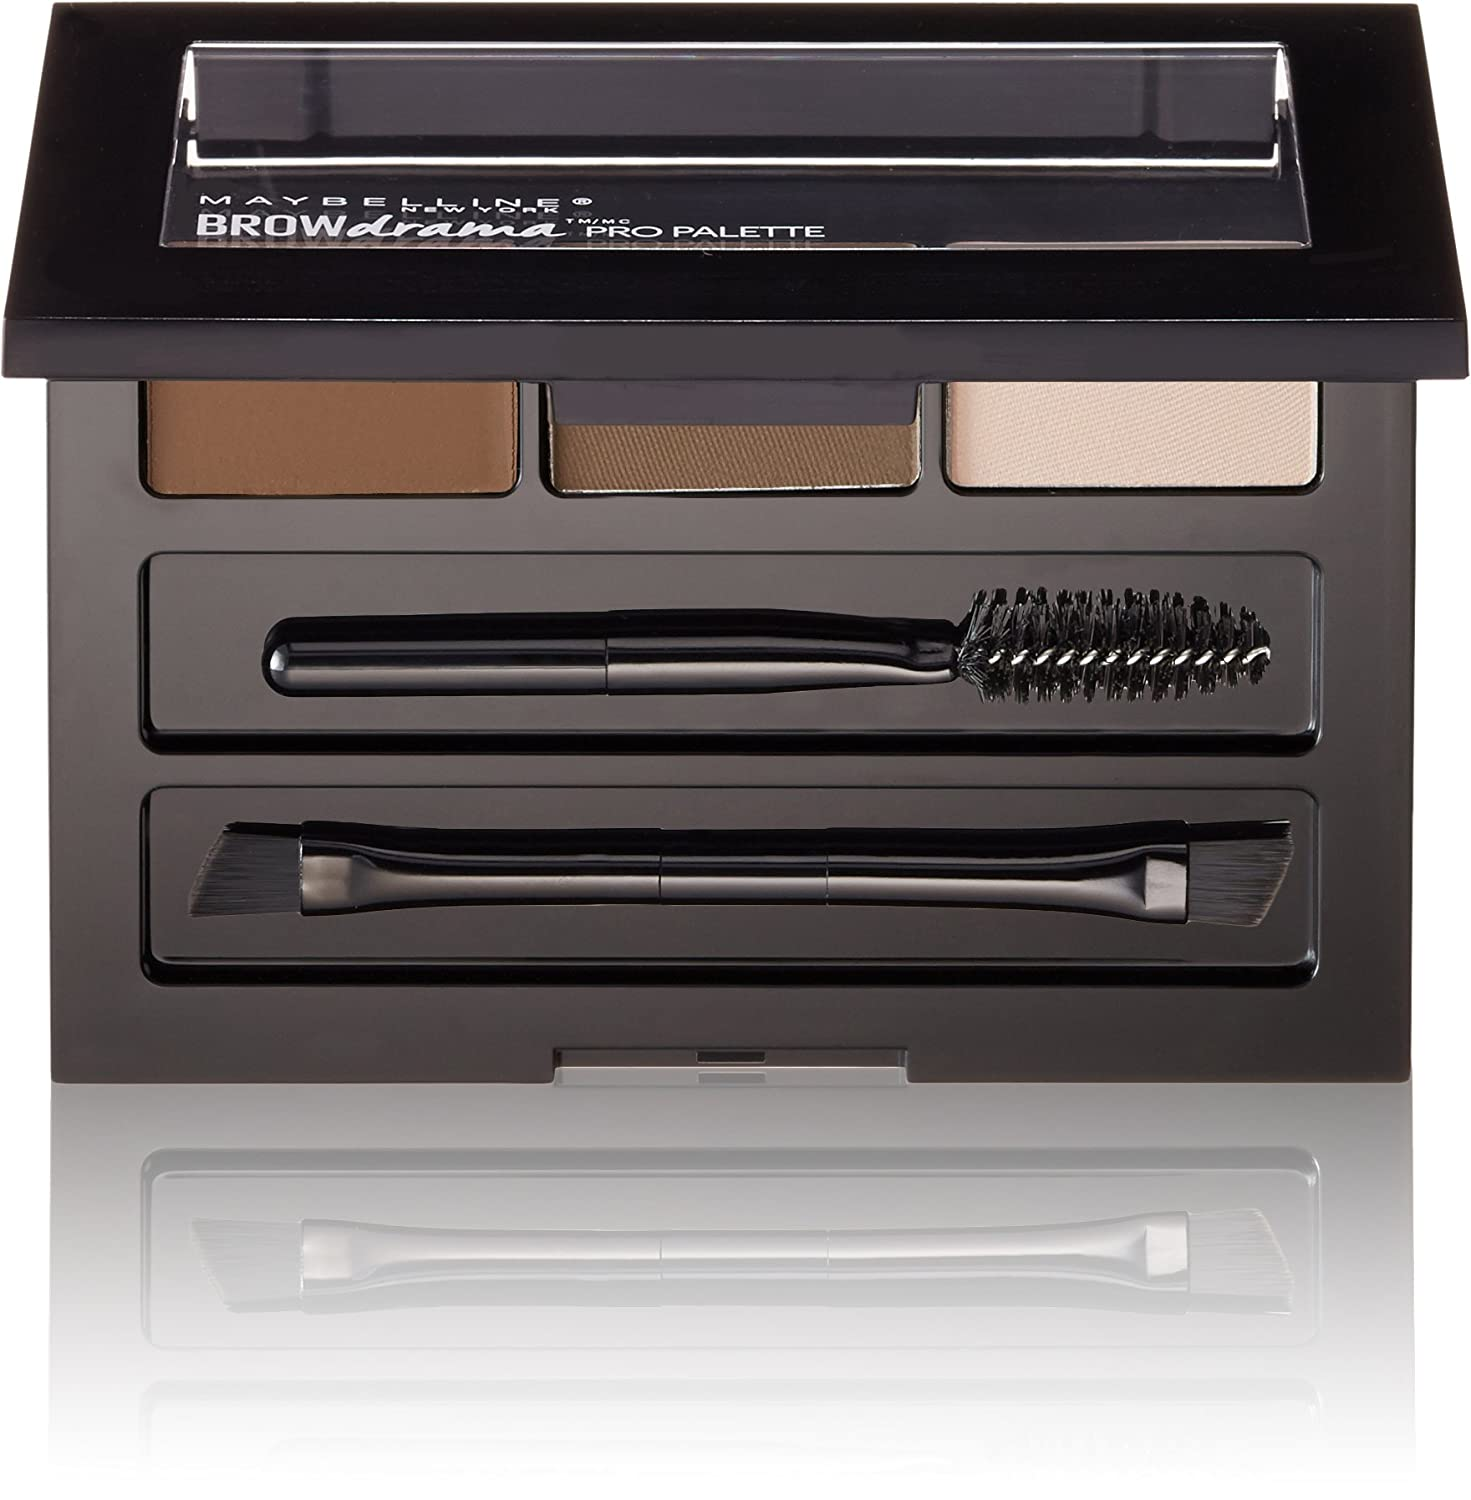 Maybelline New York Brow Drama Pro Eye Makeup Palette, Soft Brown, 0.1-Ounce MABROWPL2